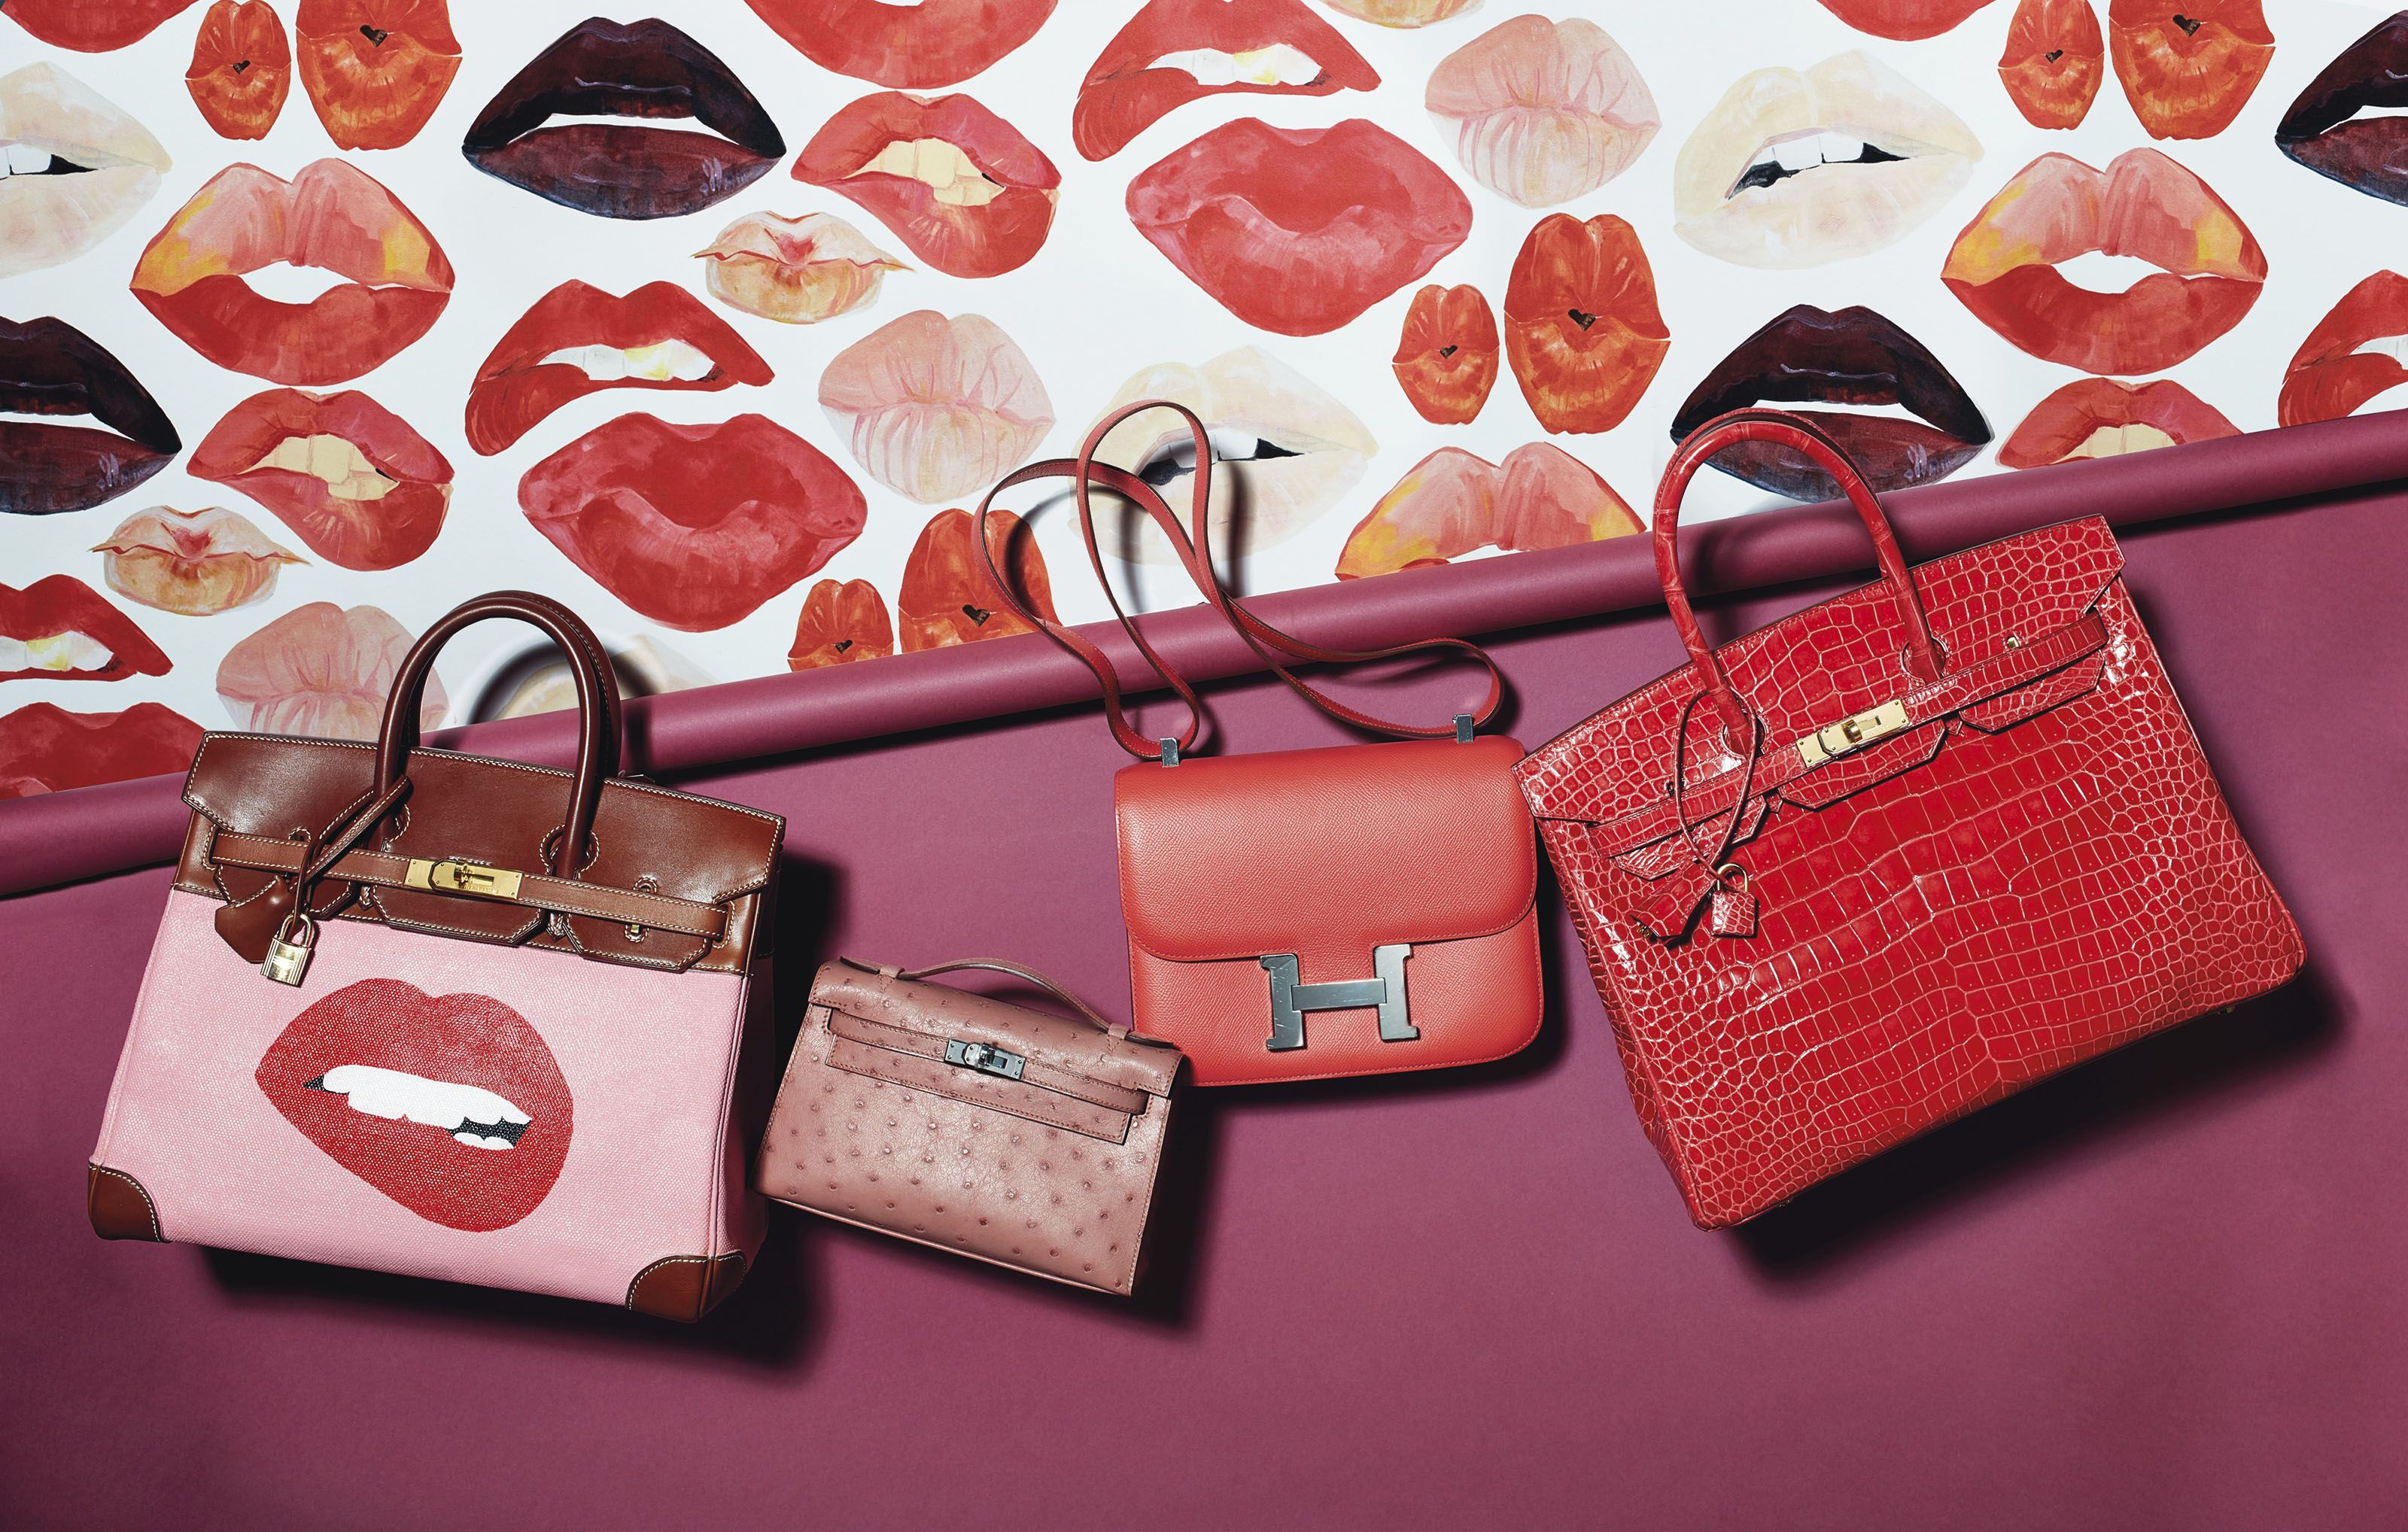 f61812015a31 Hermès Birkin Bags Go Up for Auction - Christie s Auctions Birkin Bags